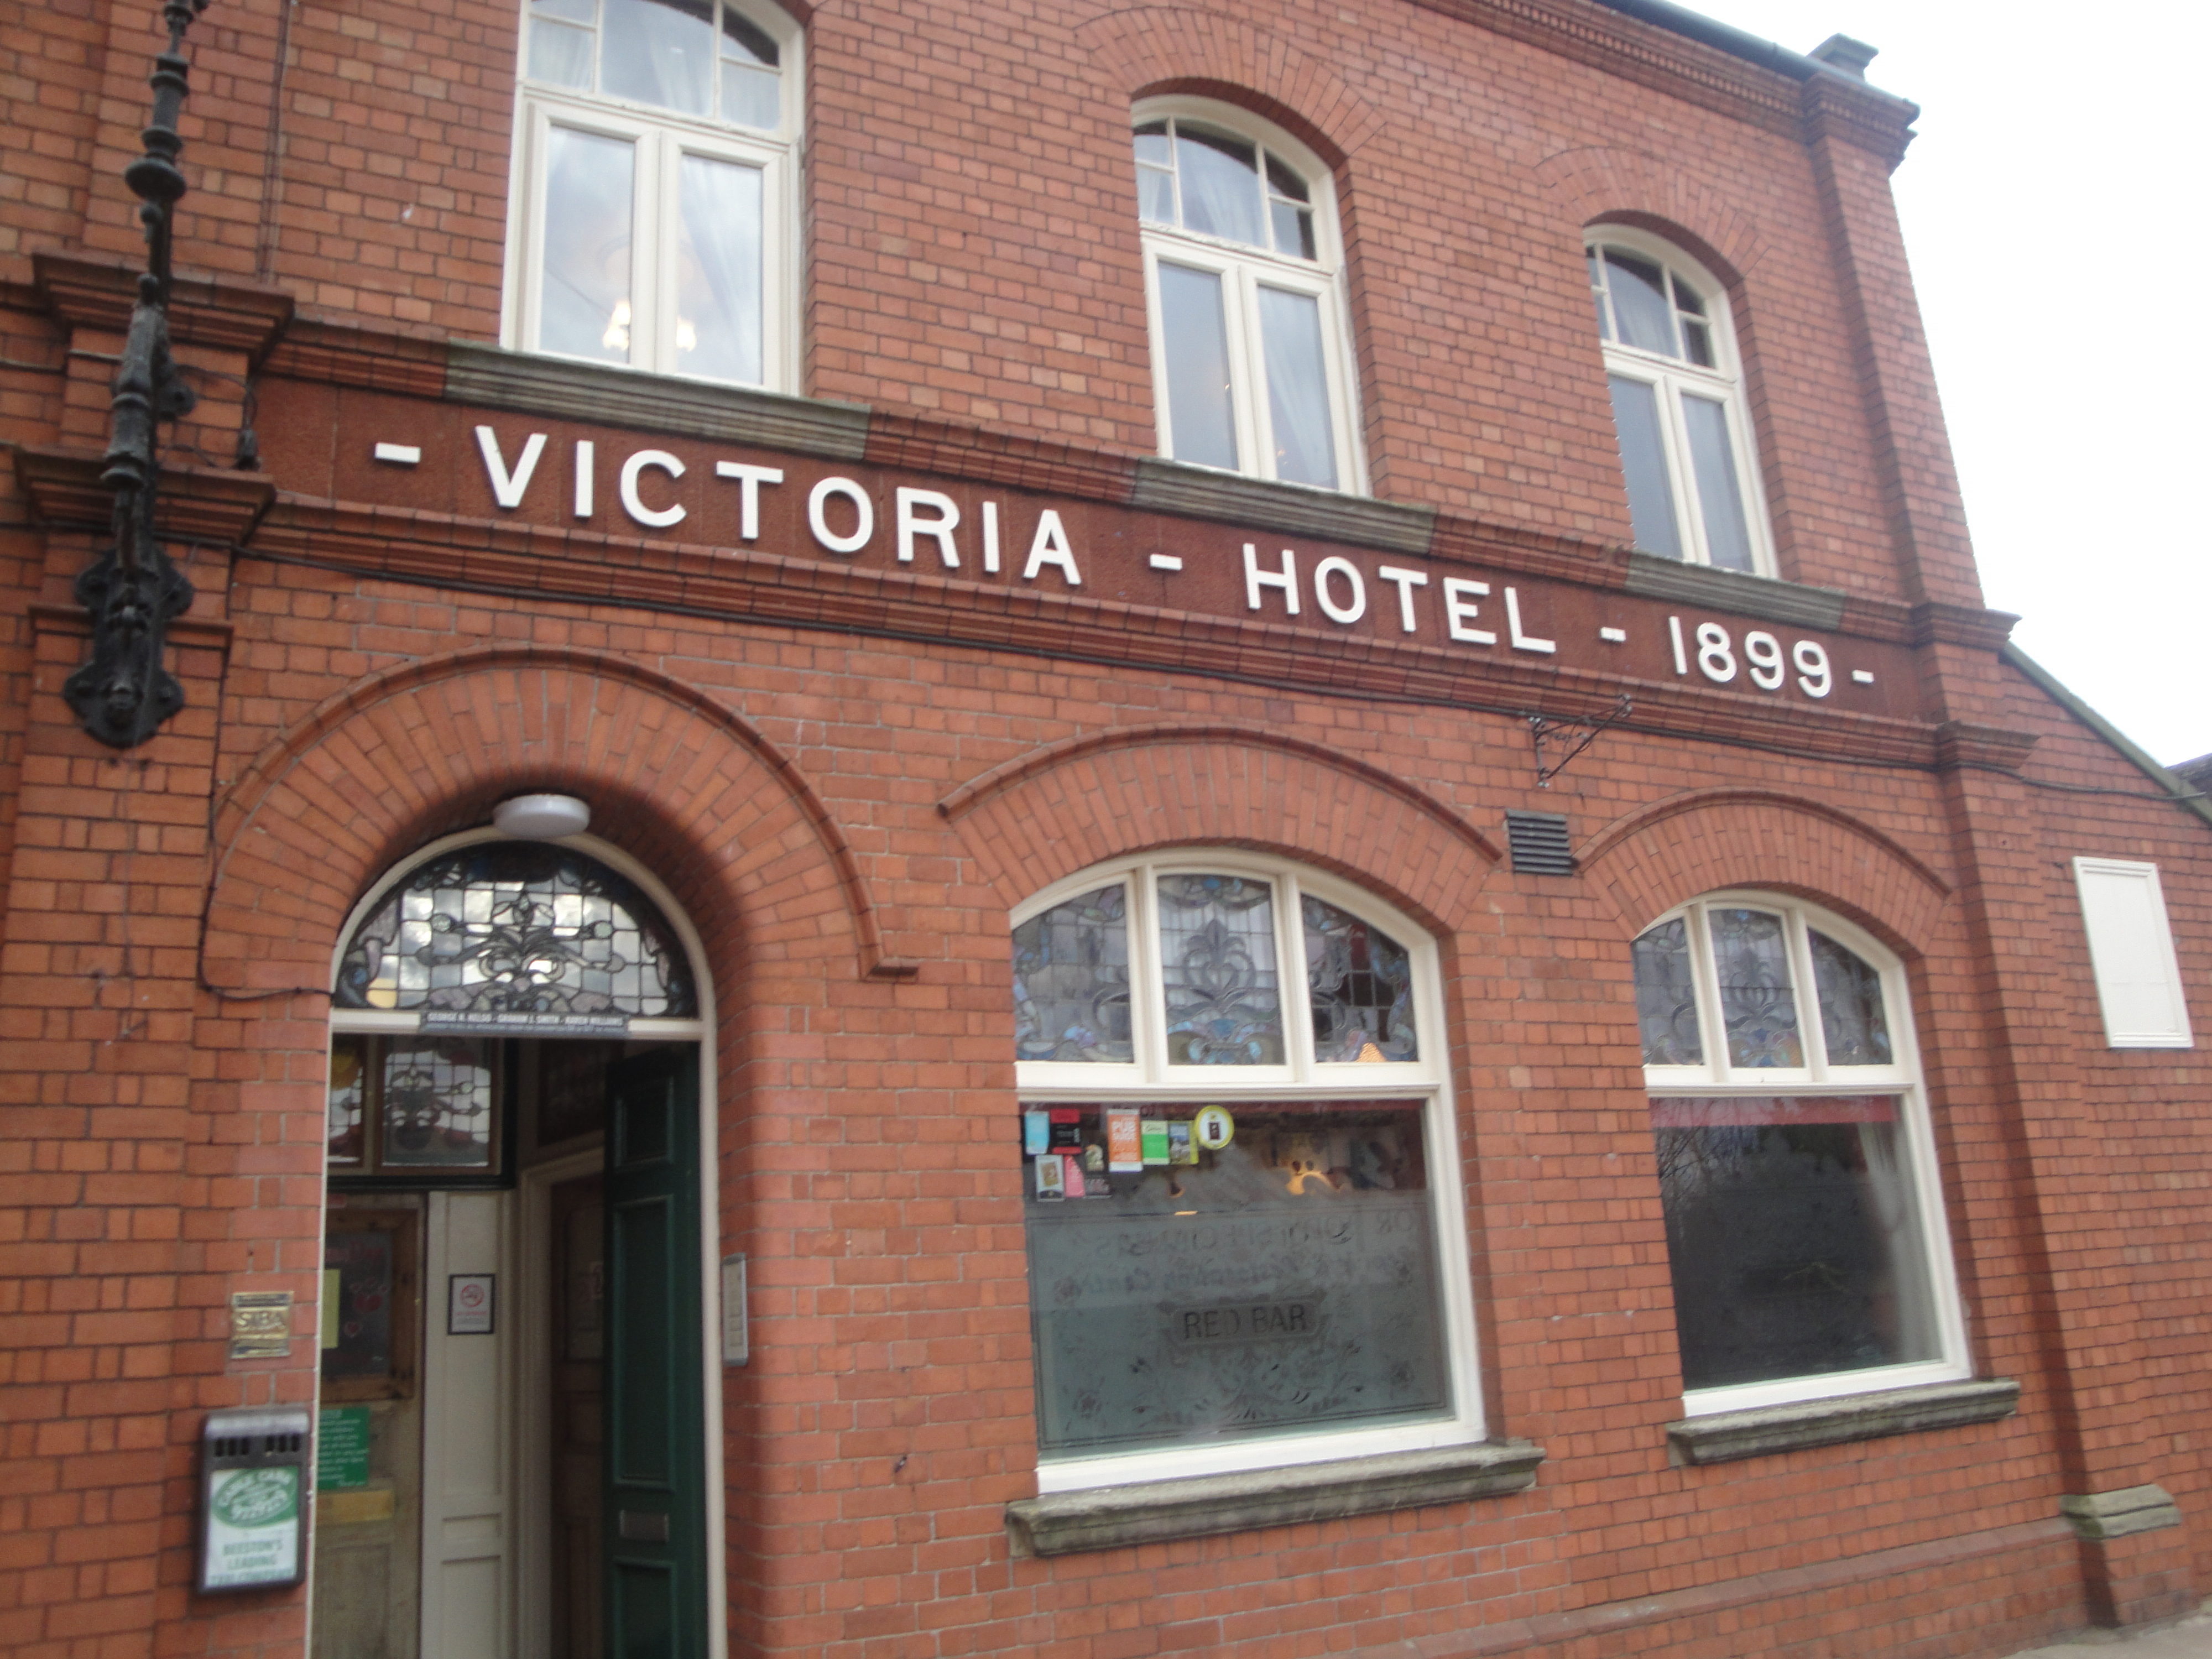 Victoria inn in beeston great beer a welcoming atmosphere and fantastic food the for Food bar beeston